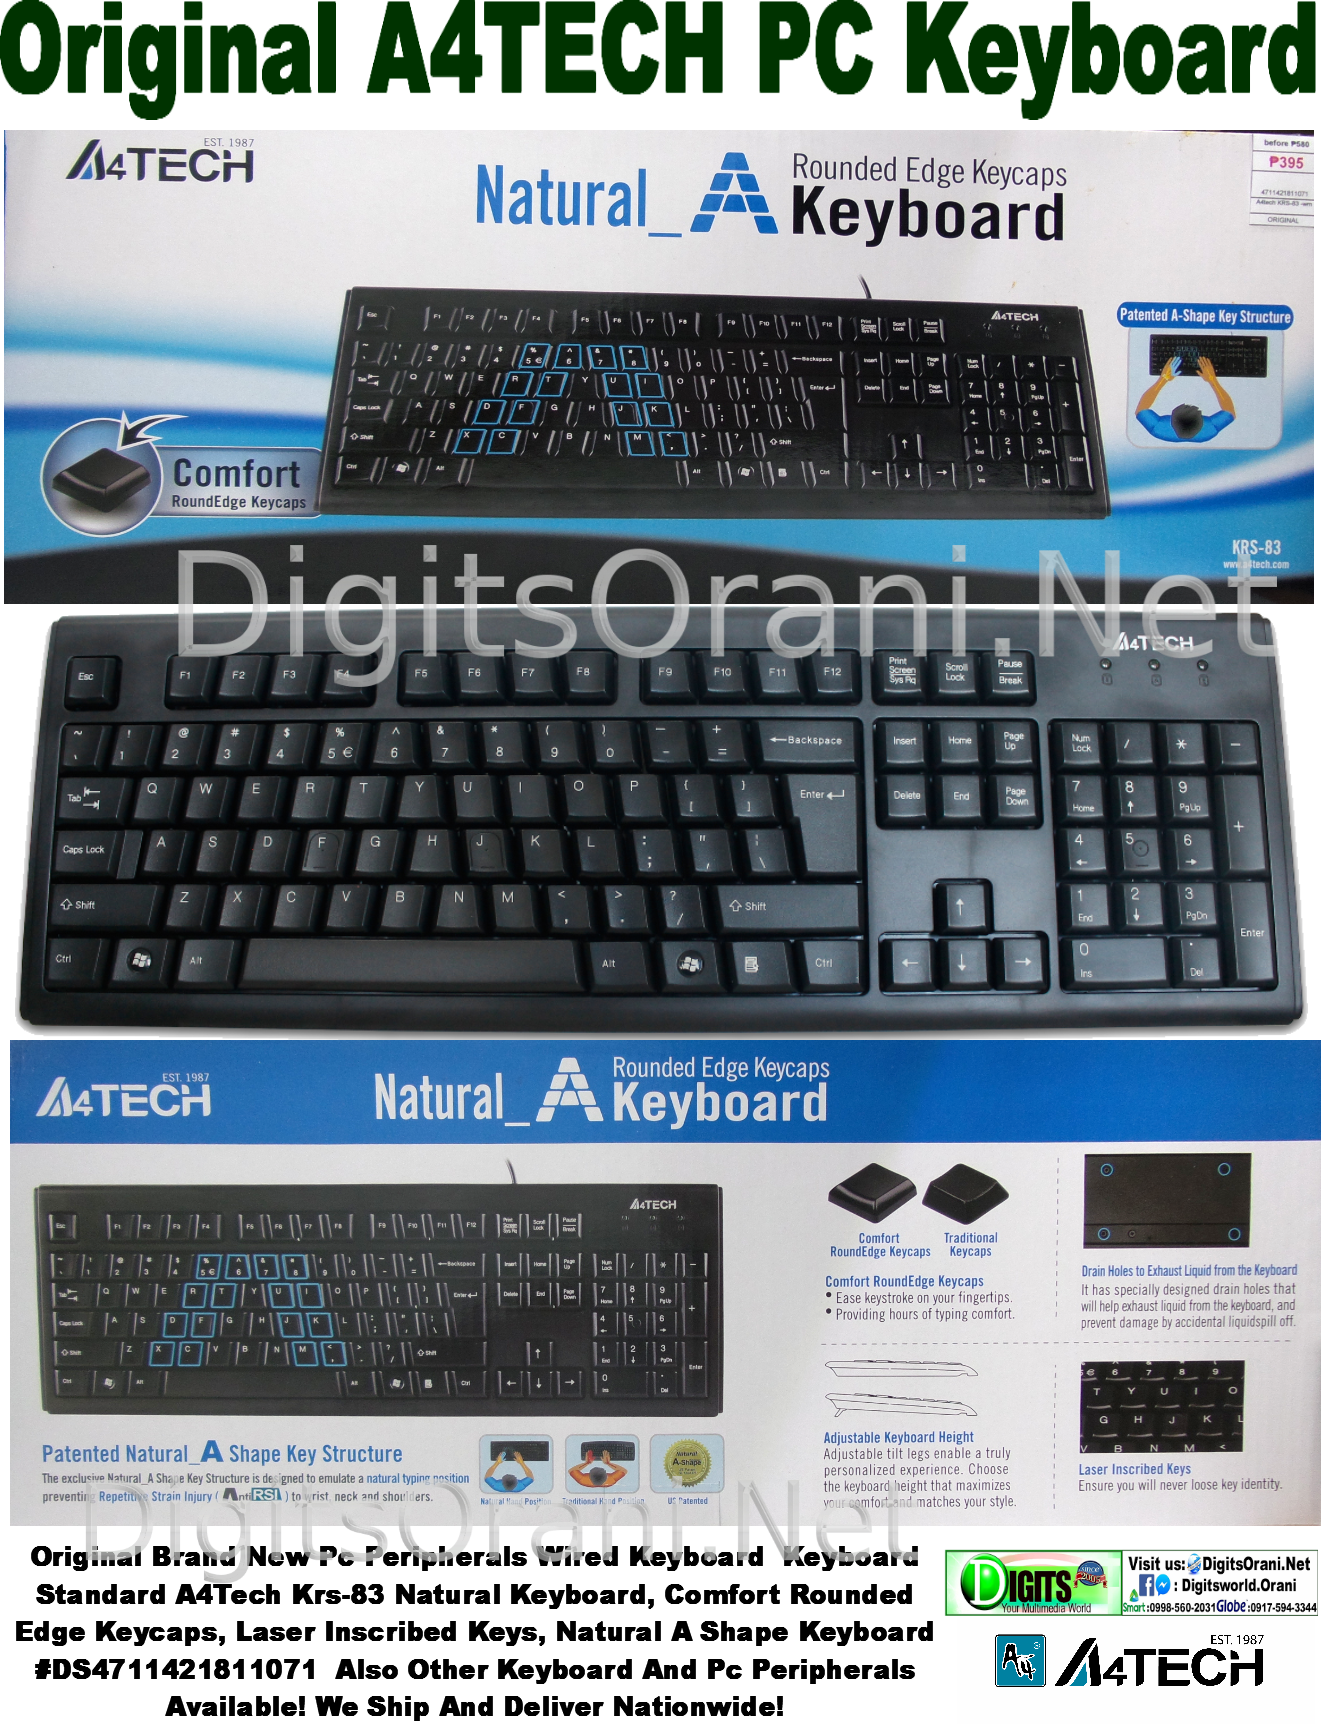 Original Usb Type Keyboard A4Tech Krs-83 A-Shape, Spill Resistand, Natural  Keyboard, Comfort Rounded Edge Keycaps, Laser Inscribed Keys, Genuine